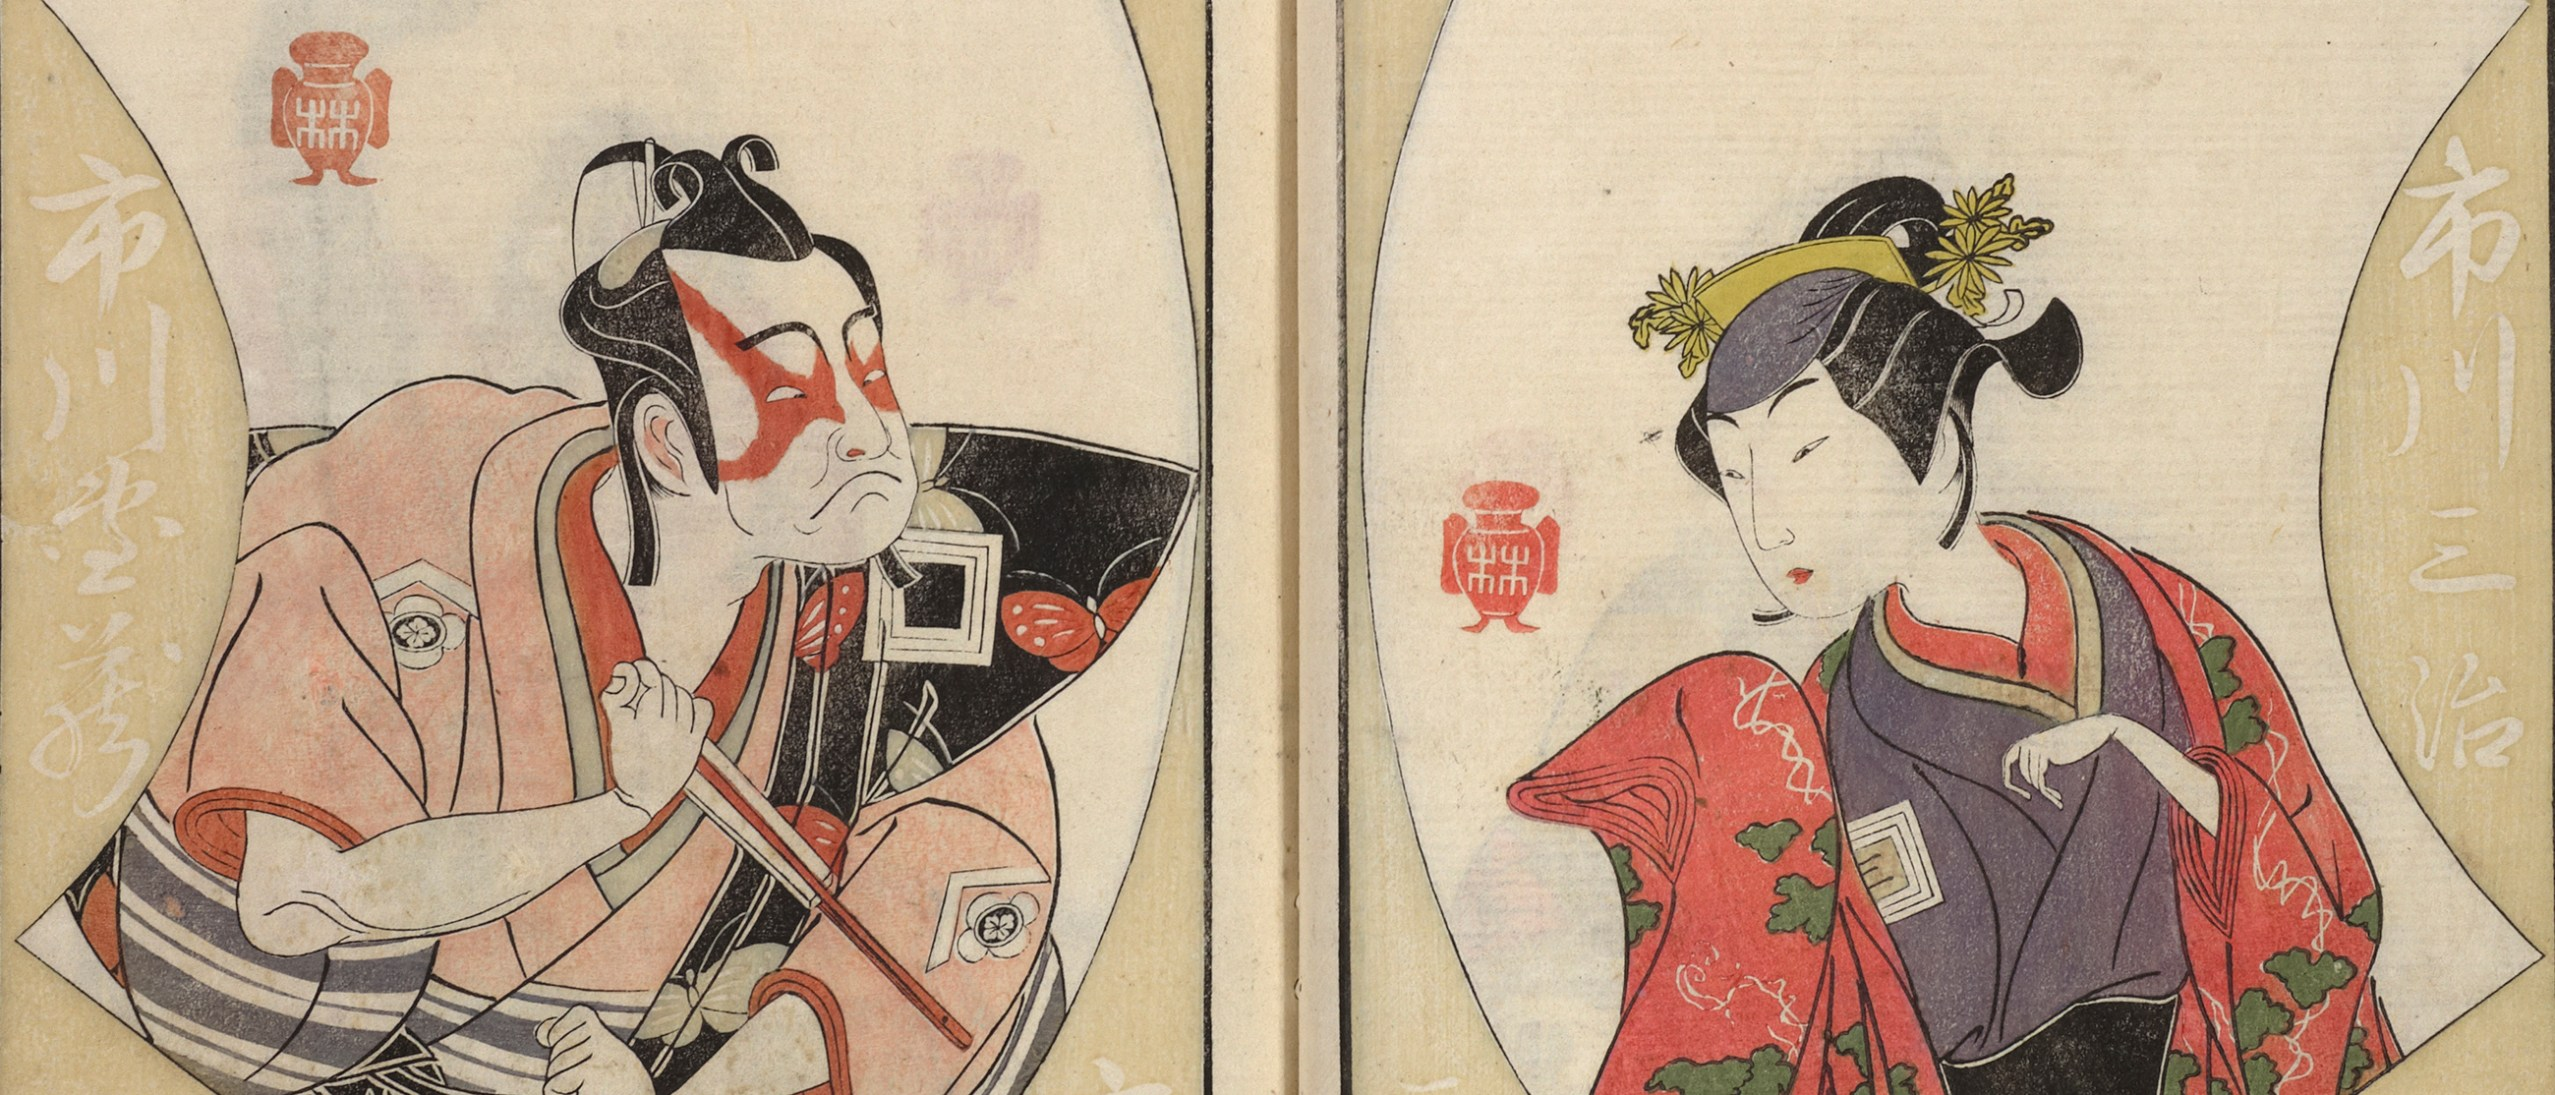 Detail image, Ehon butai ogi, vol. 3; by Katsukawa Shunshō (1726—1792) and Ippitsusai Bunchō (active ca. 1755—1790); Japan, Edo period, 1770; Woodblock printed; ink and color on paper covers; Purchase - The Gerhard Pulverer Collection, Museum funds, Friends of the Freer and Sackler Galleries and the Harold P. Stern Memorial fund in appreciation of Jeffrey P. Cunard and his exemplary service to the Galleries as chair of the Board of Trustees (2003—2007); Freer Gallery of Art Study Collection FSC-GR-780.164.3